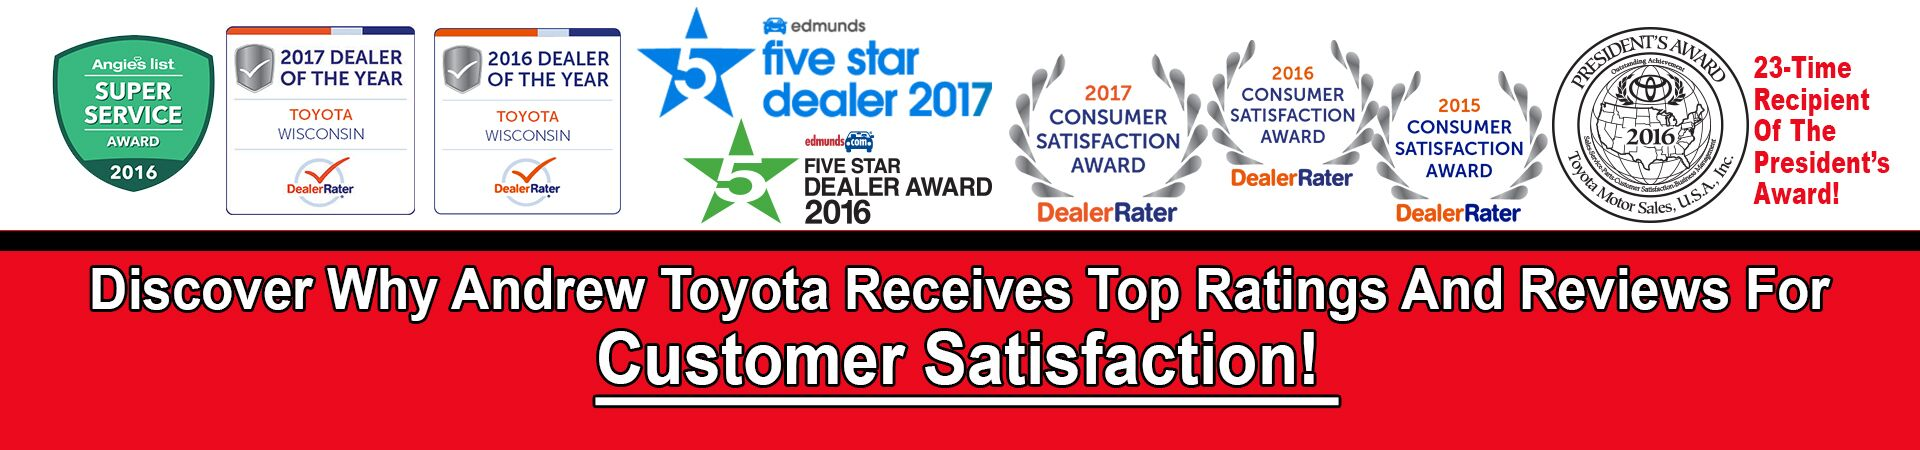 Andrew Toyota's Awards and Reviews- Click here to read what our customers are saying about us!